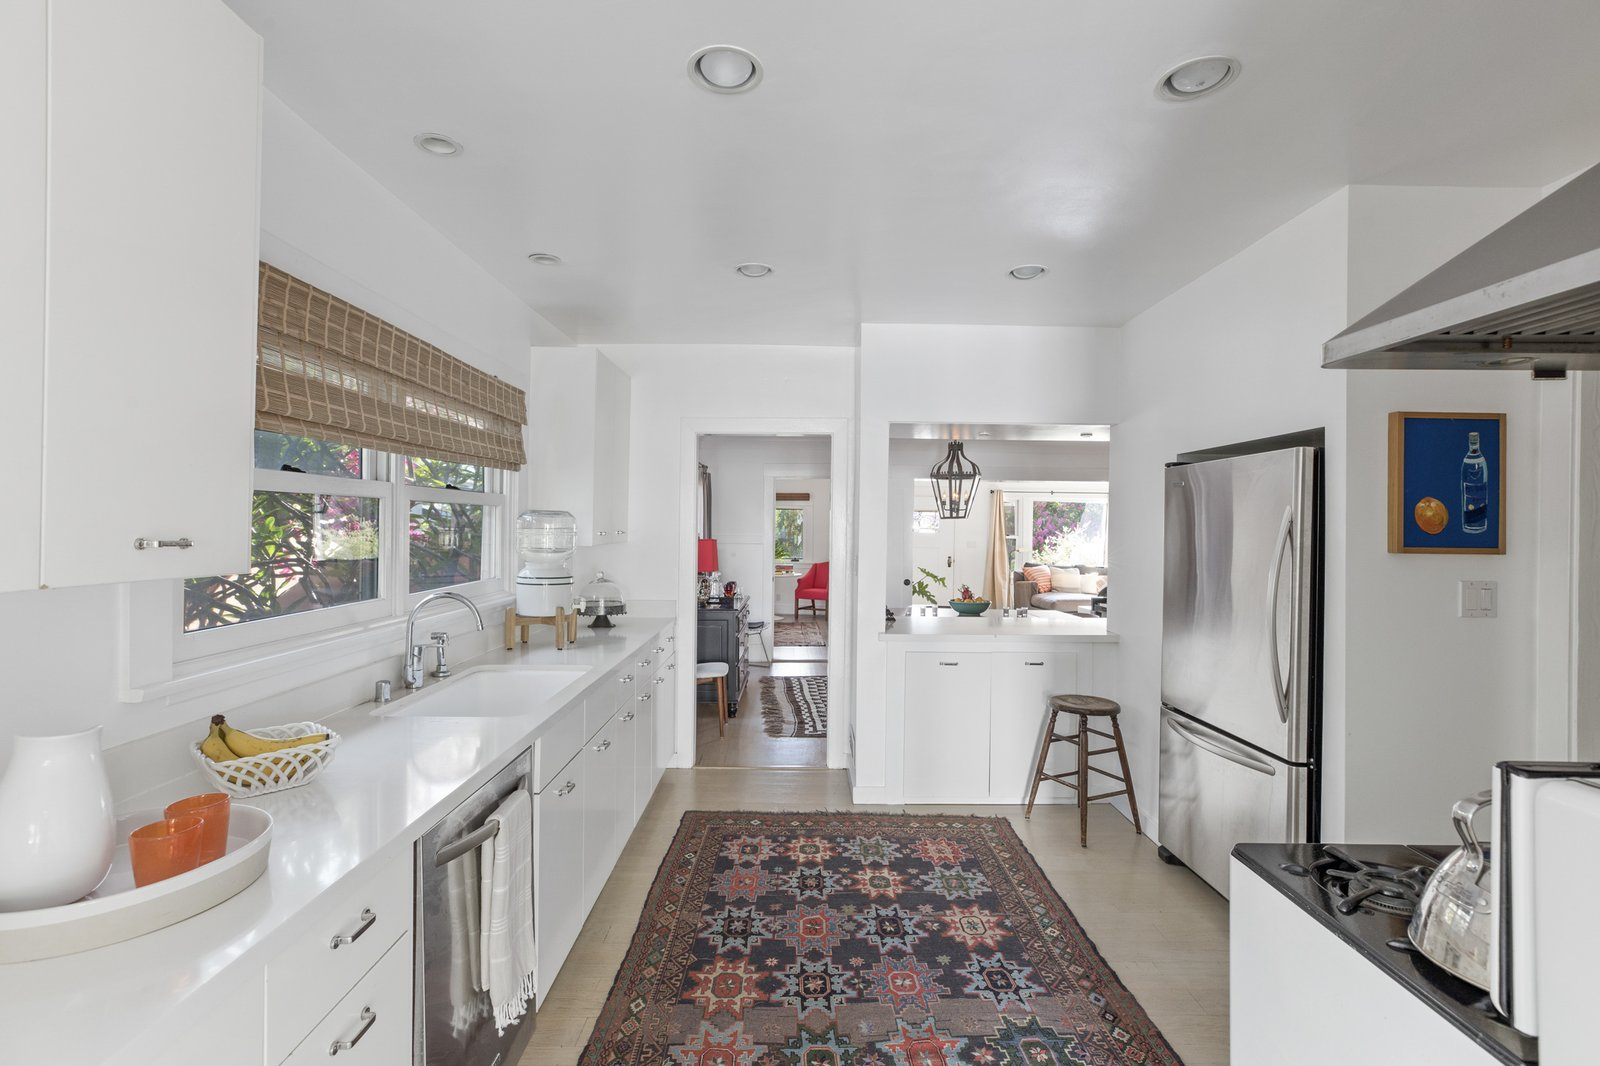 An updated kitchen occupies a rear corner of the home and is connected to the dining room by a small pass-through counter area. A row of cabinetry is flanked by a vintage Wedgewood range.  Photo 6 of 16 in An Artfully Reimagined California Craftsman Asks $1.2M